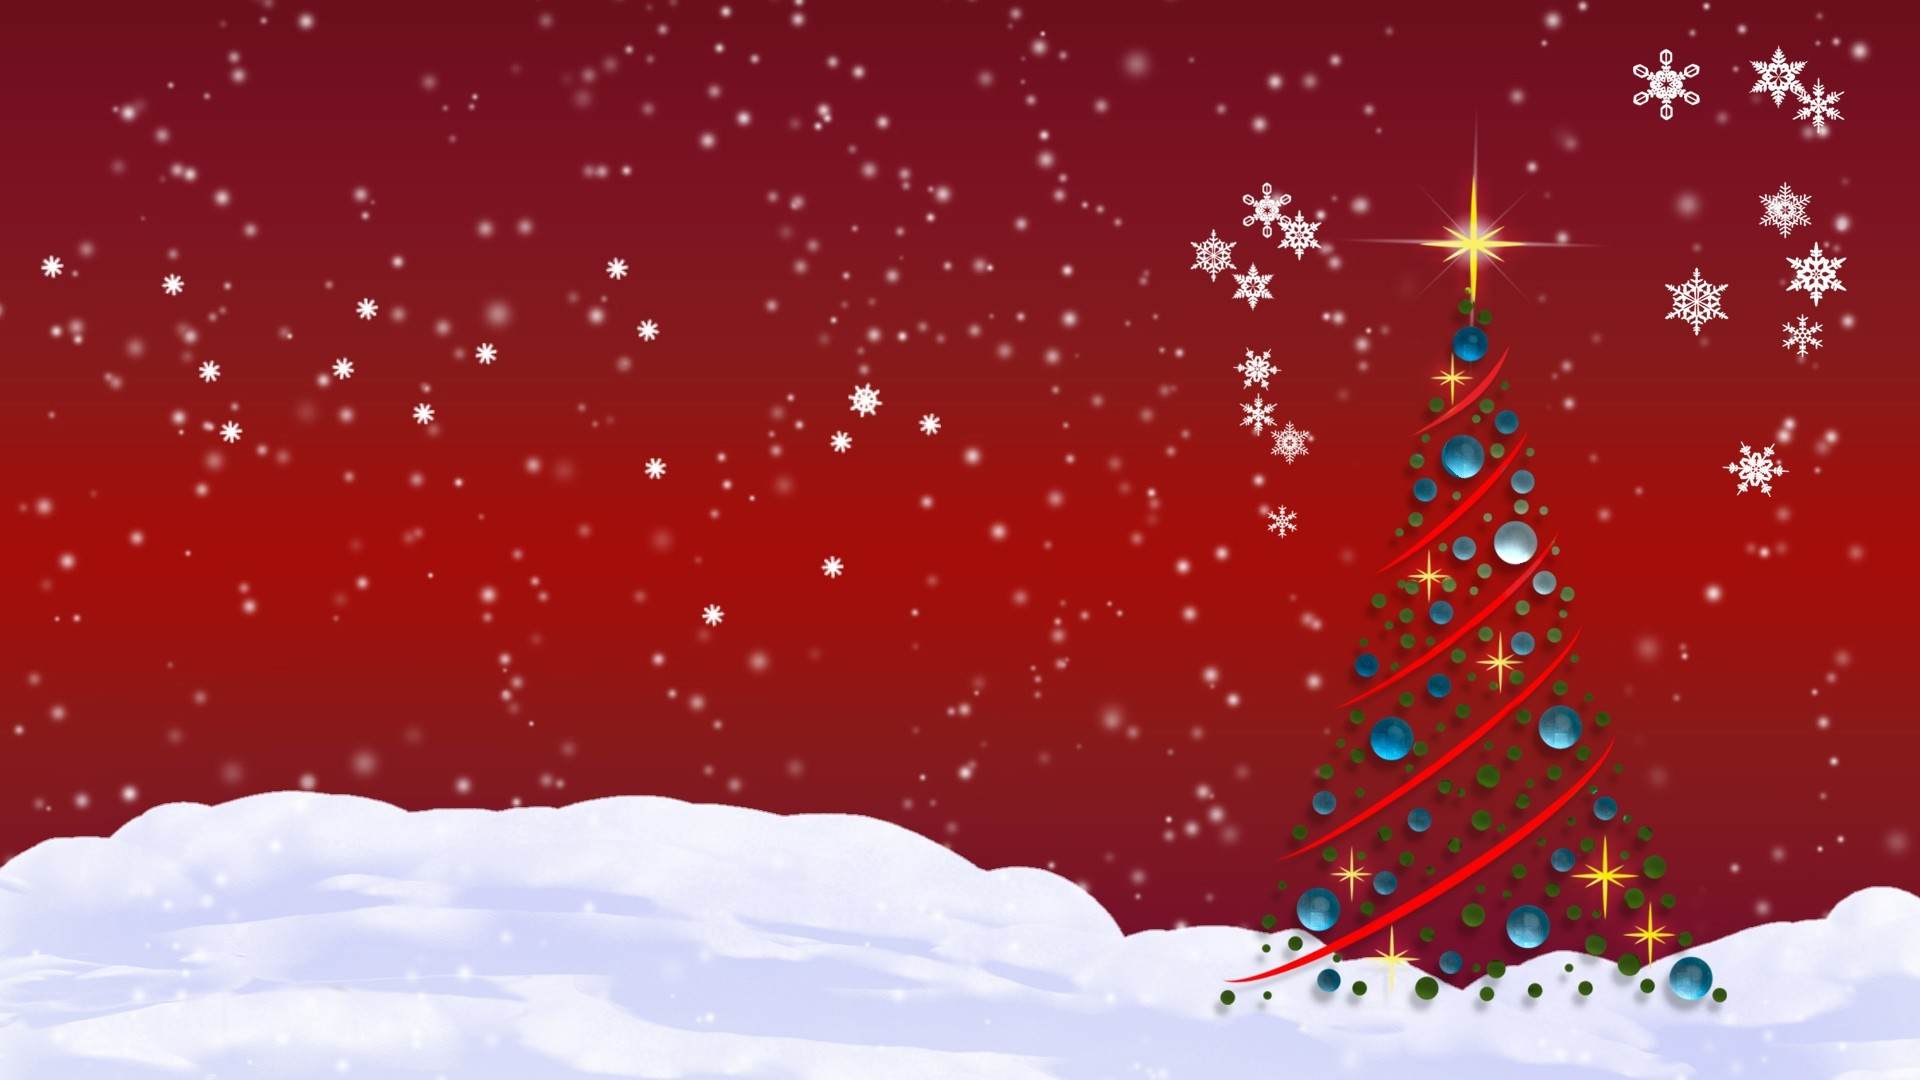 1920x1080 Free Christmas Wallpapers And Screensavers For Mac